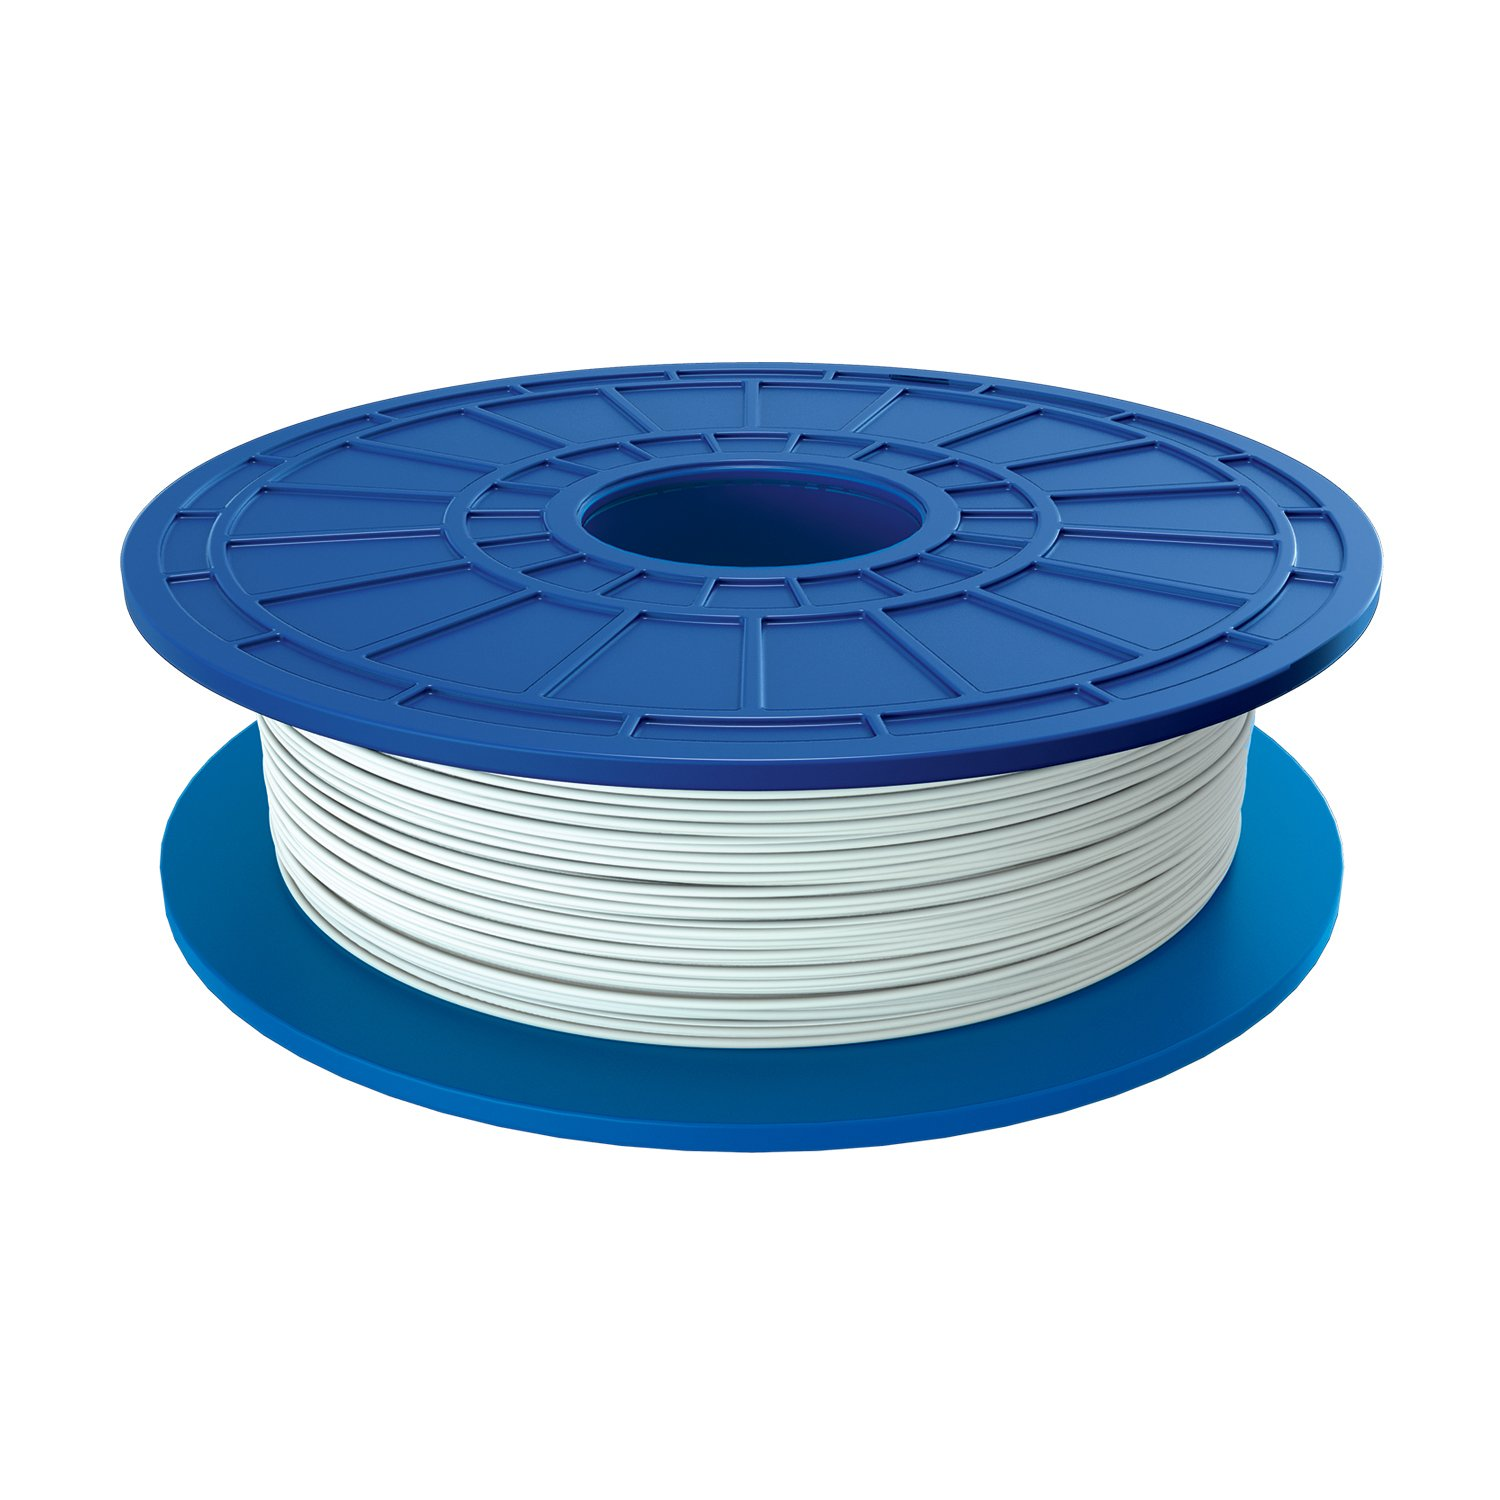 Dremel PLA 3D Printer Filament, 1.75 mm Diameter, 0.5 kg Spool Weight, White